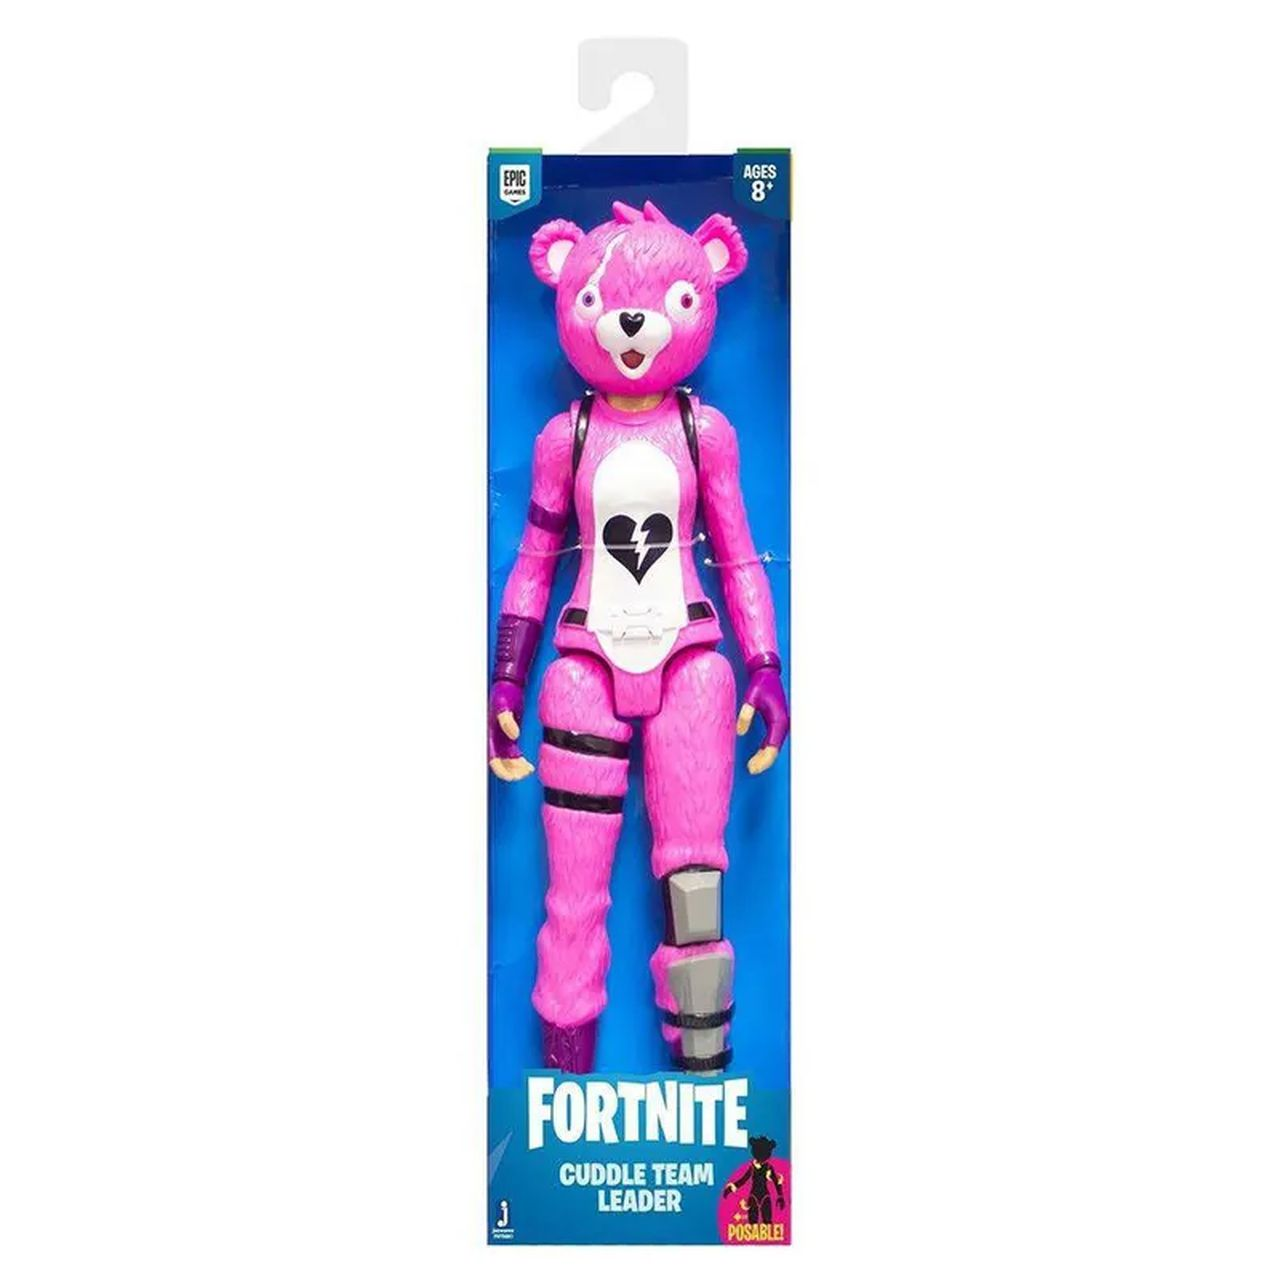 Fortnite - Figura Boneco Cuddle Team Leader - 30 cm Original